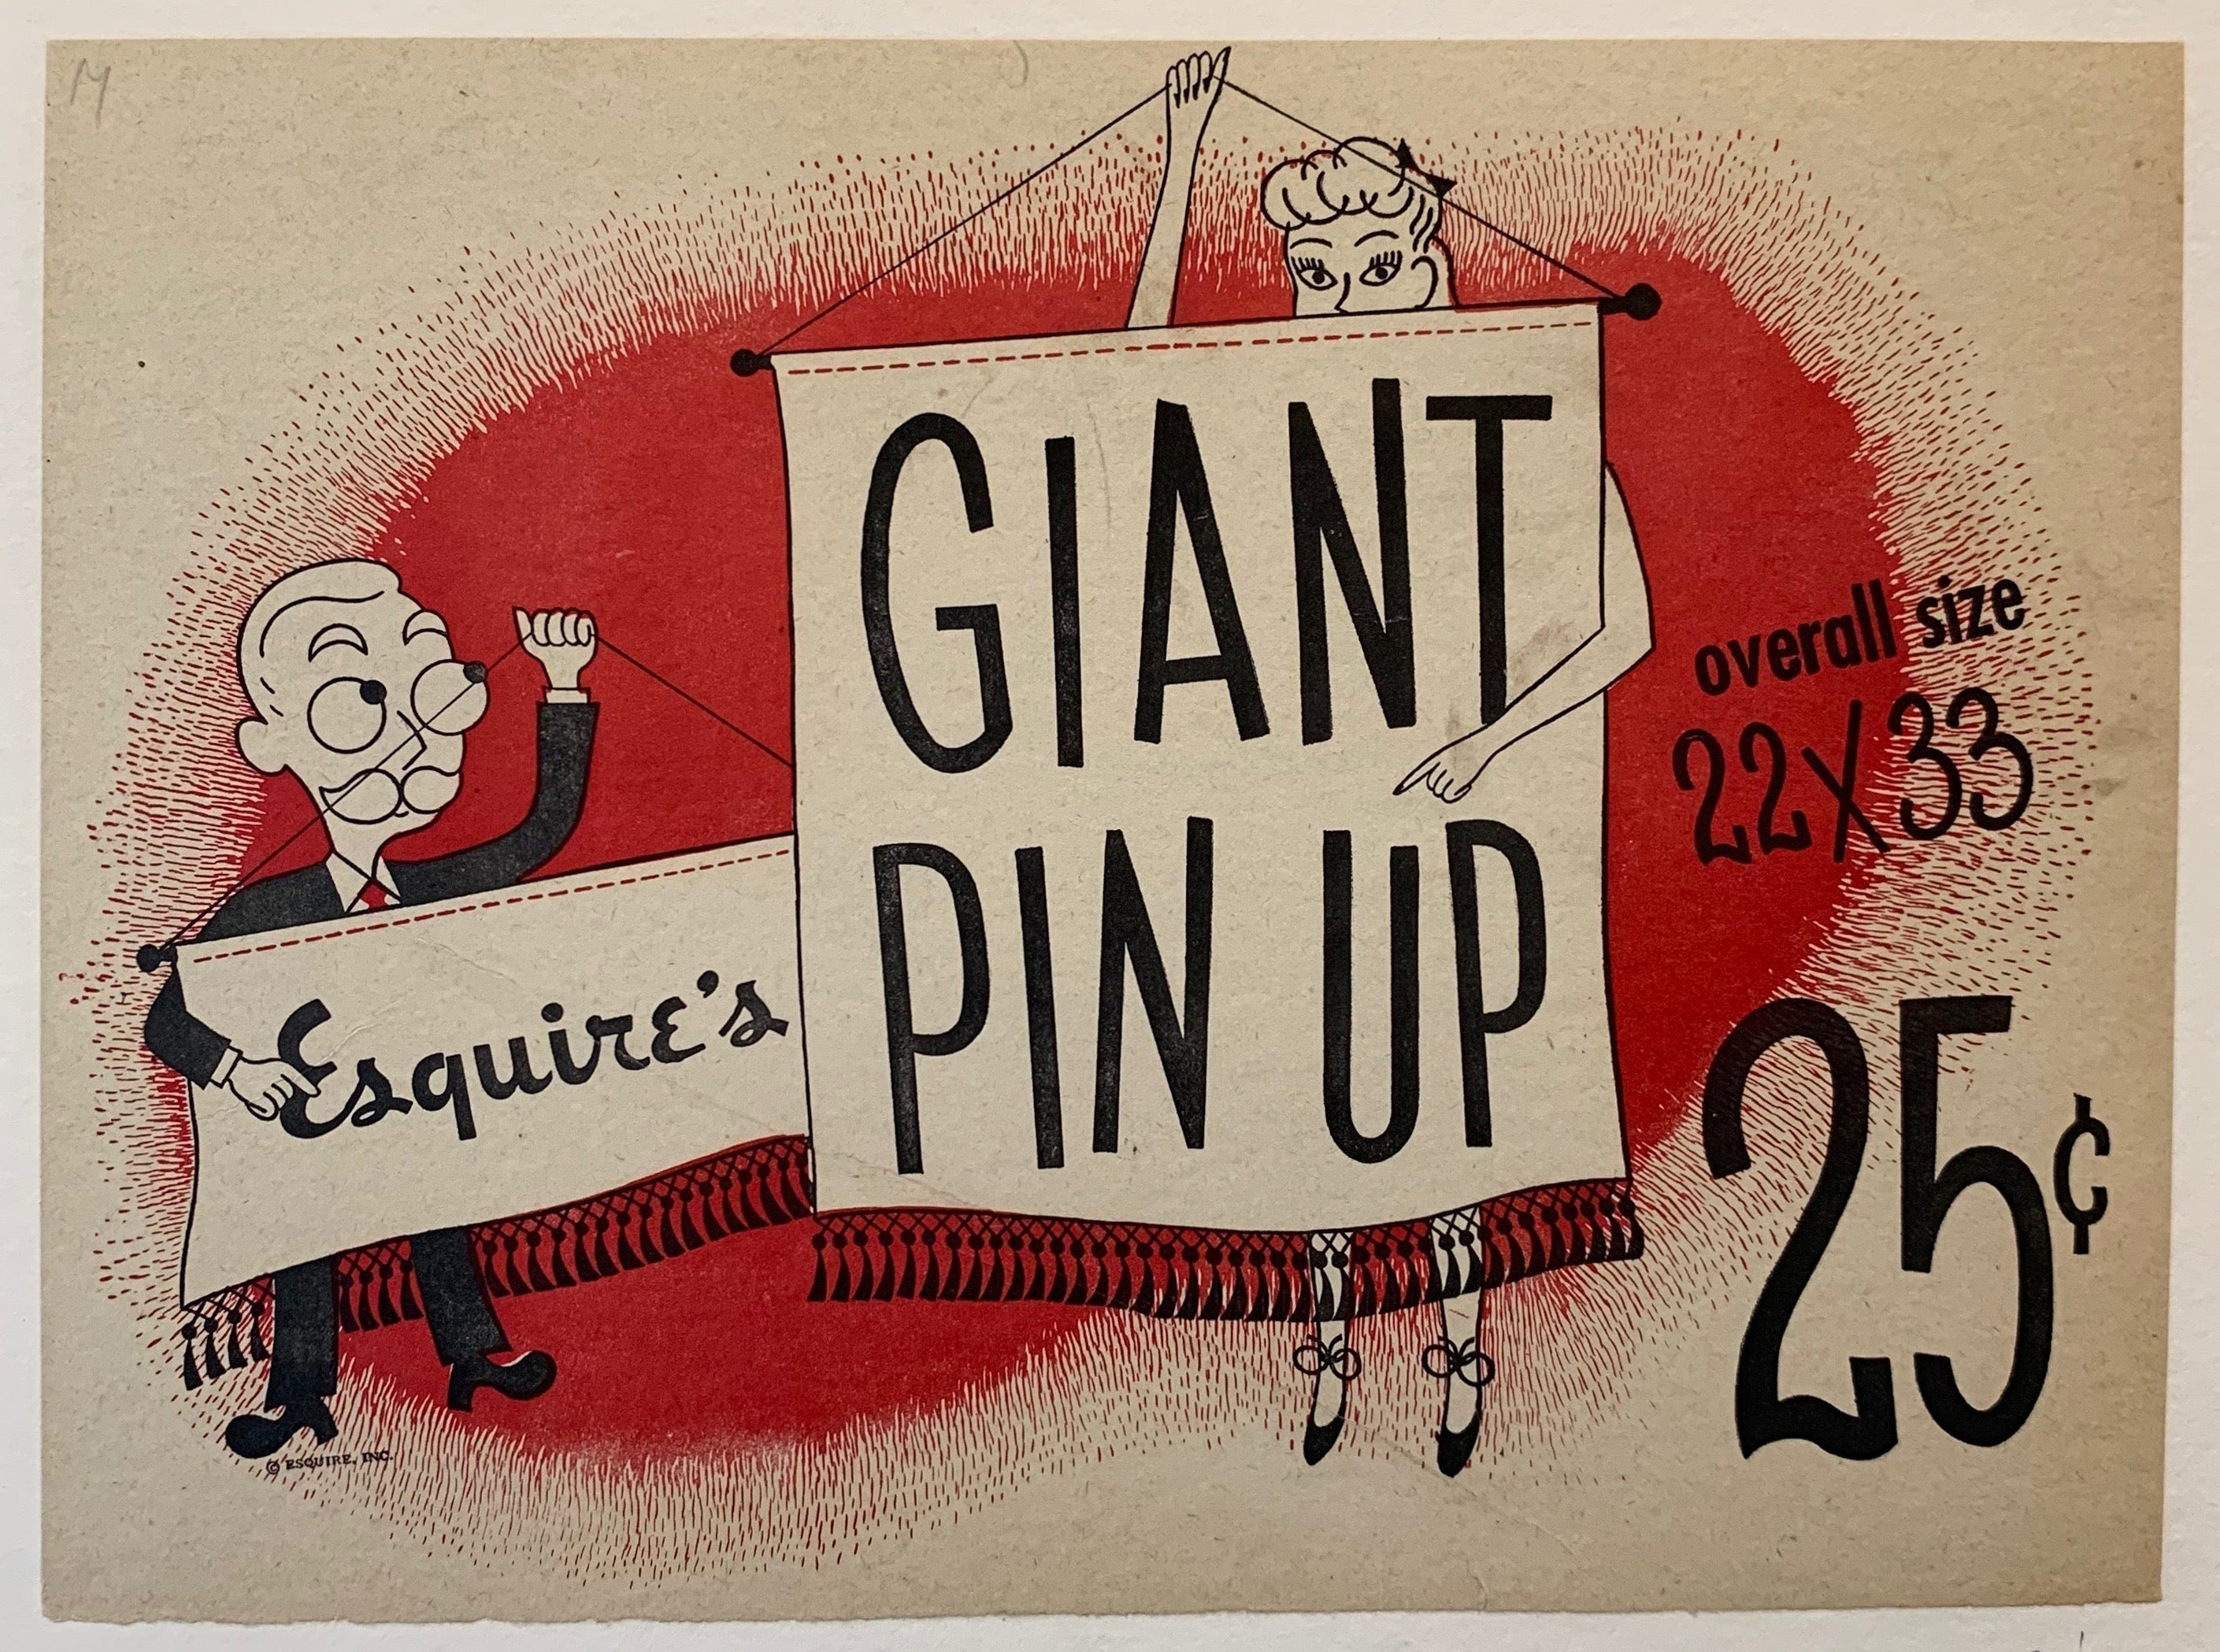 Esquire's Giant Pin Up